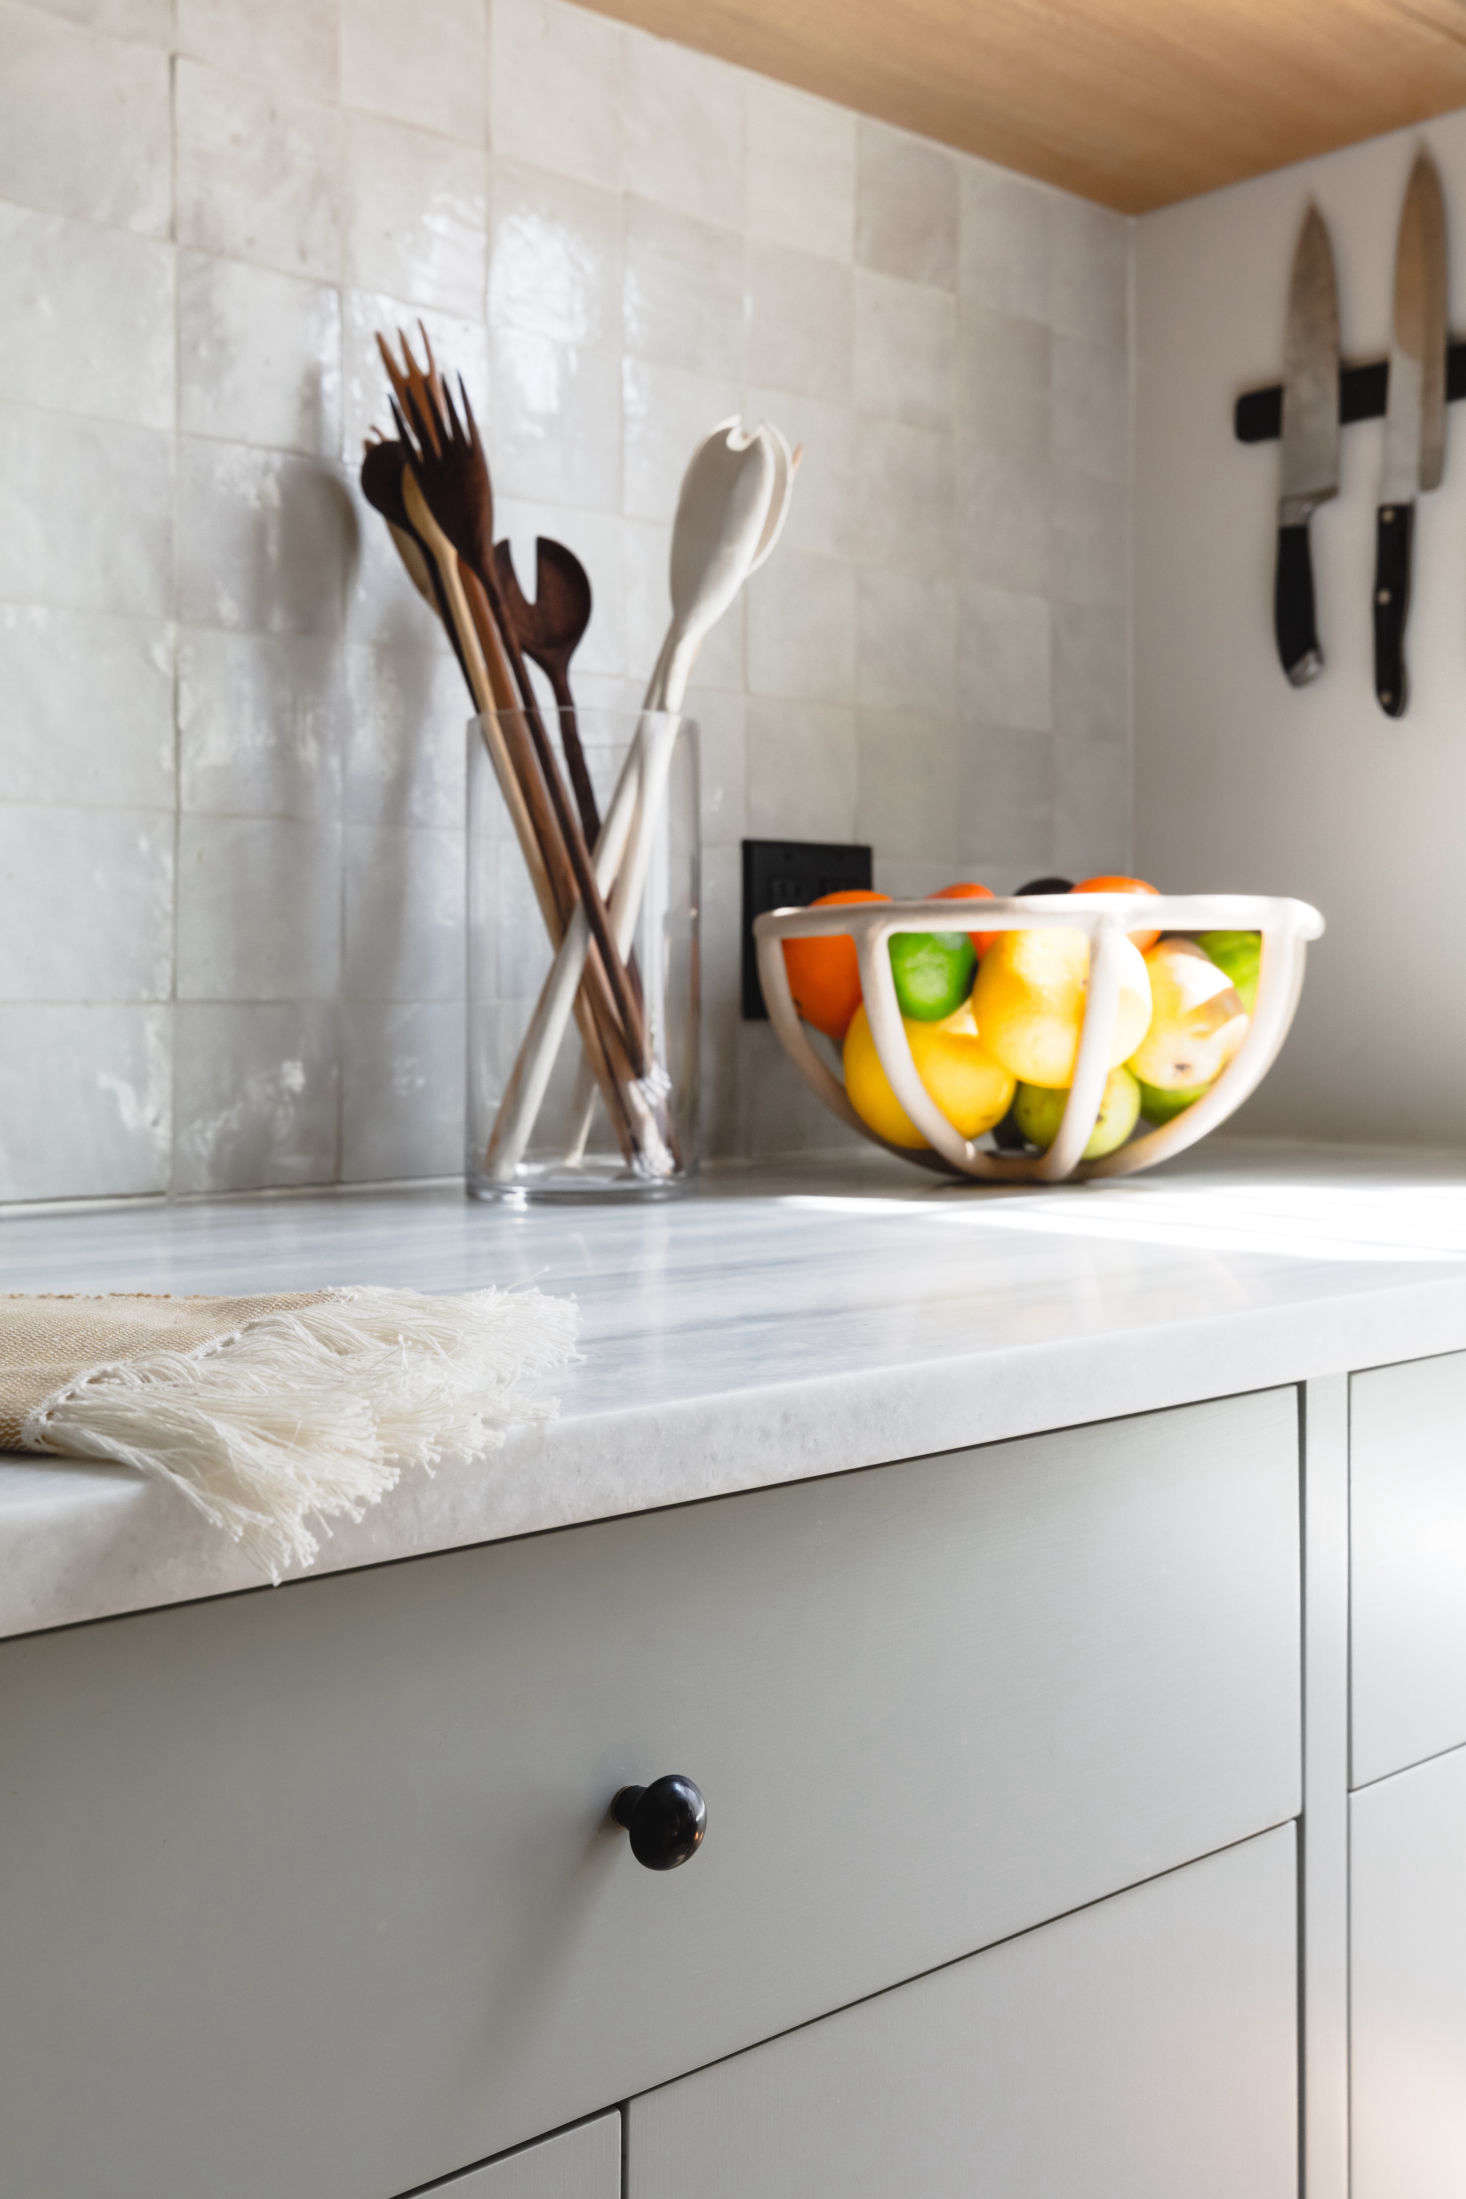 The backsplash is tiled with with Weathered White Zelligefrom Clé that lends the requested human touch: &#8